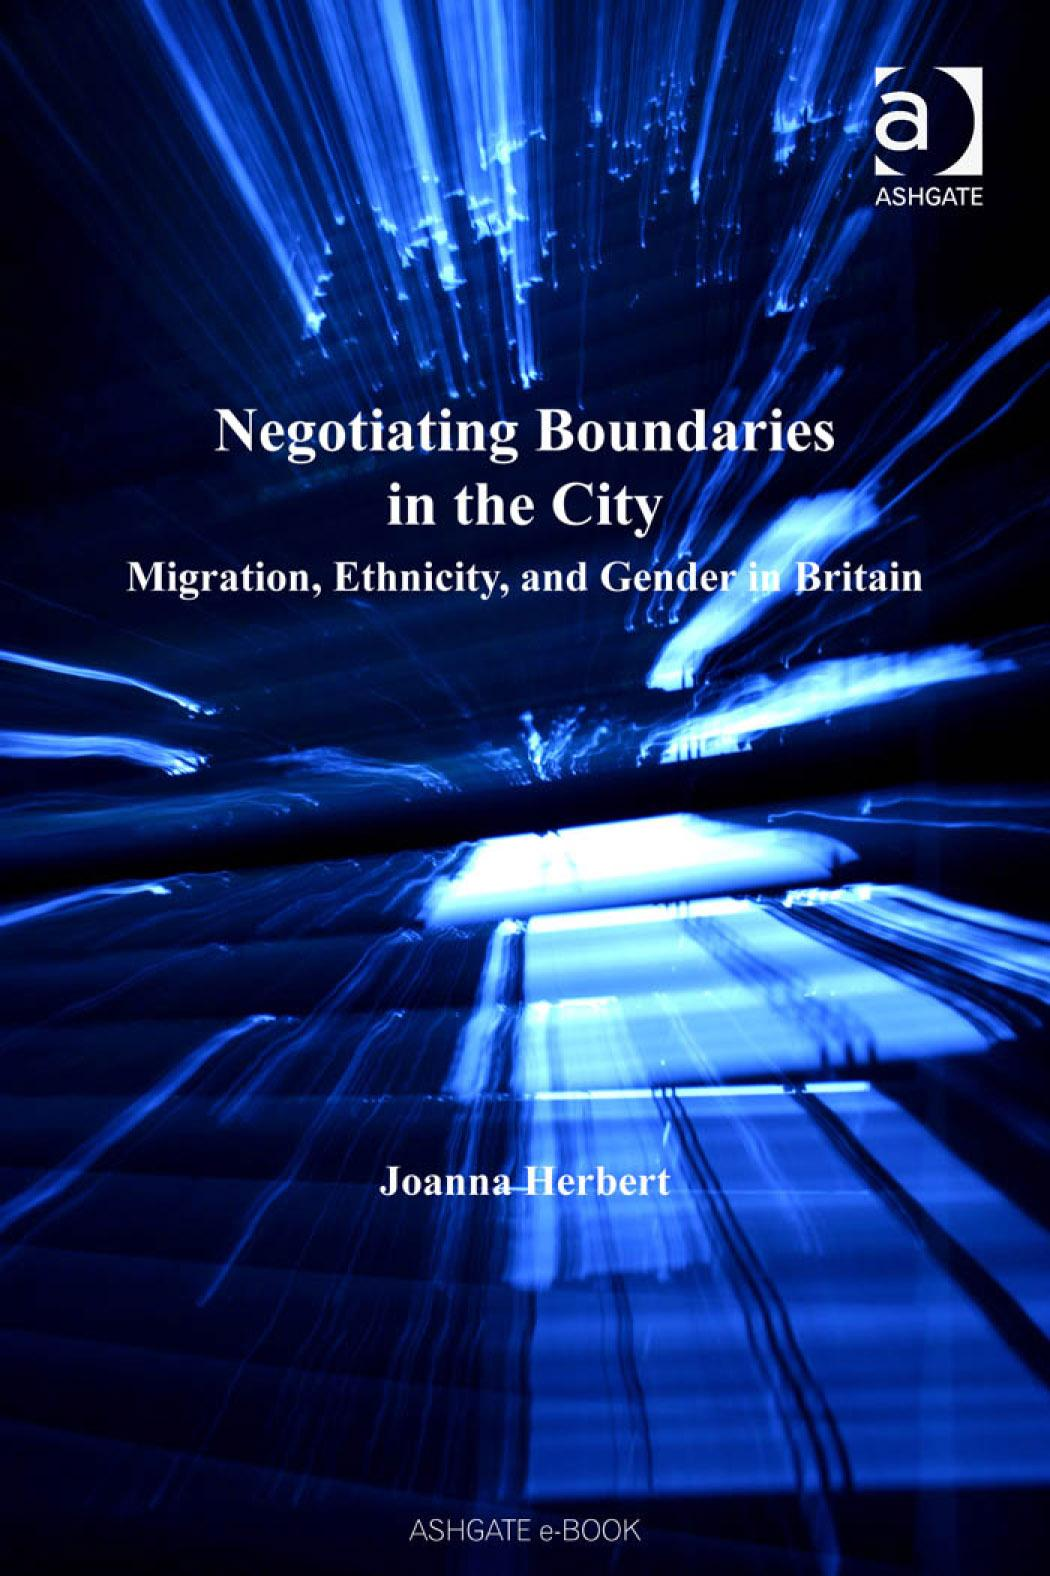 Negotiating Boundaries in the City: Migration, Ethnicity, and Gender in Britain Studies in Migration and Diaspora